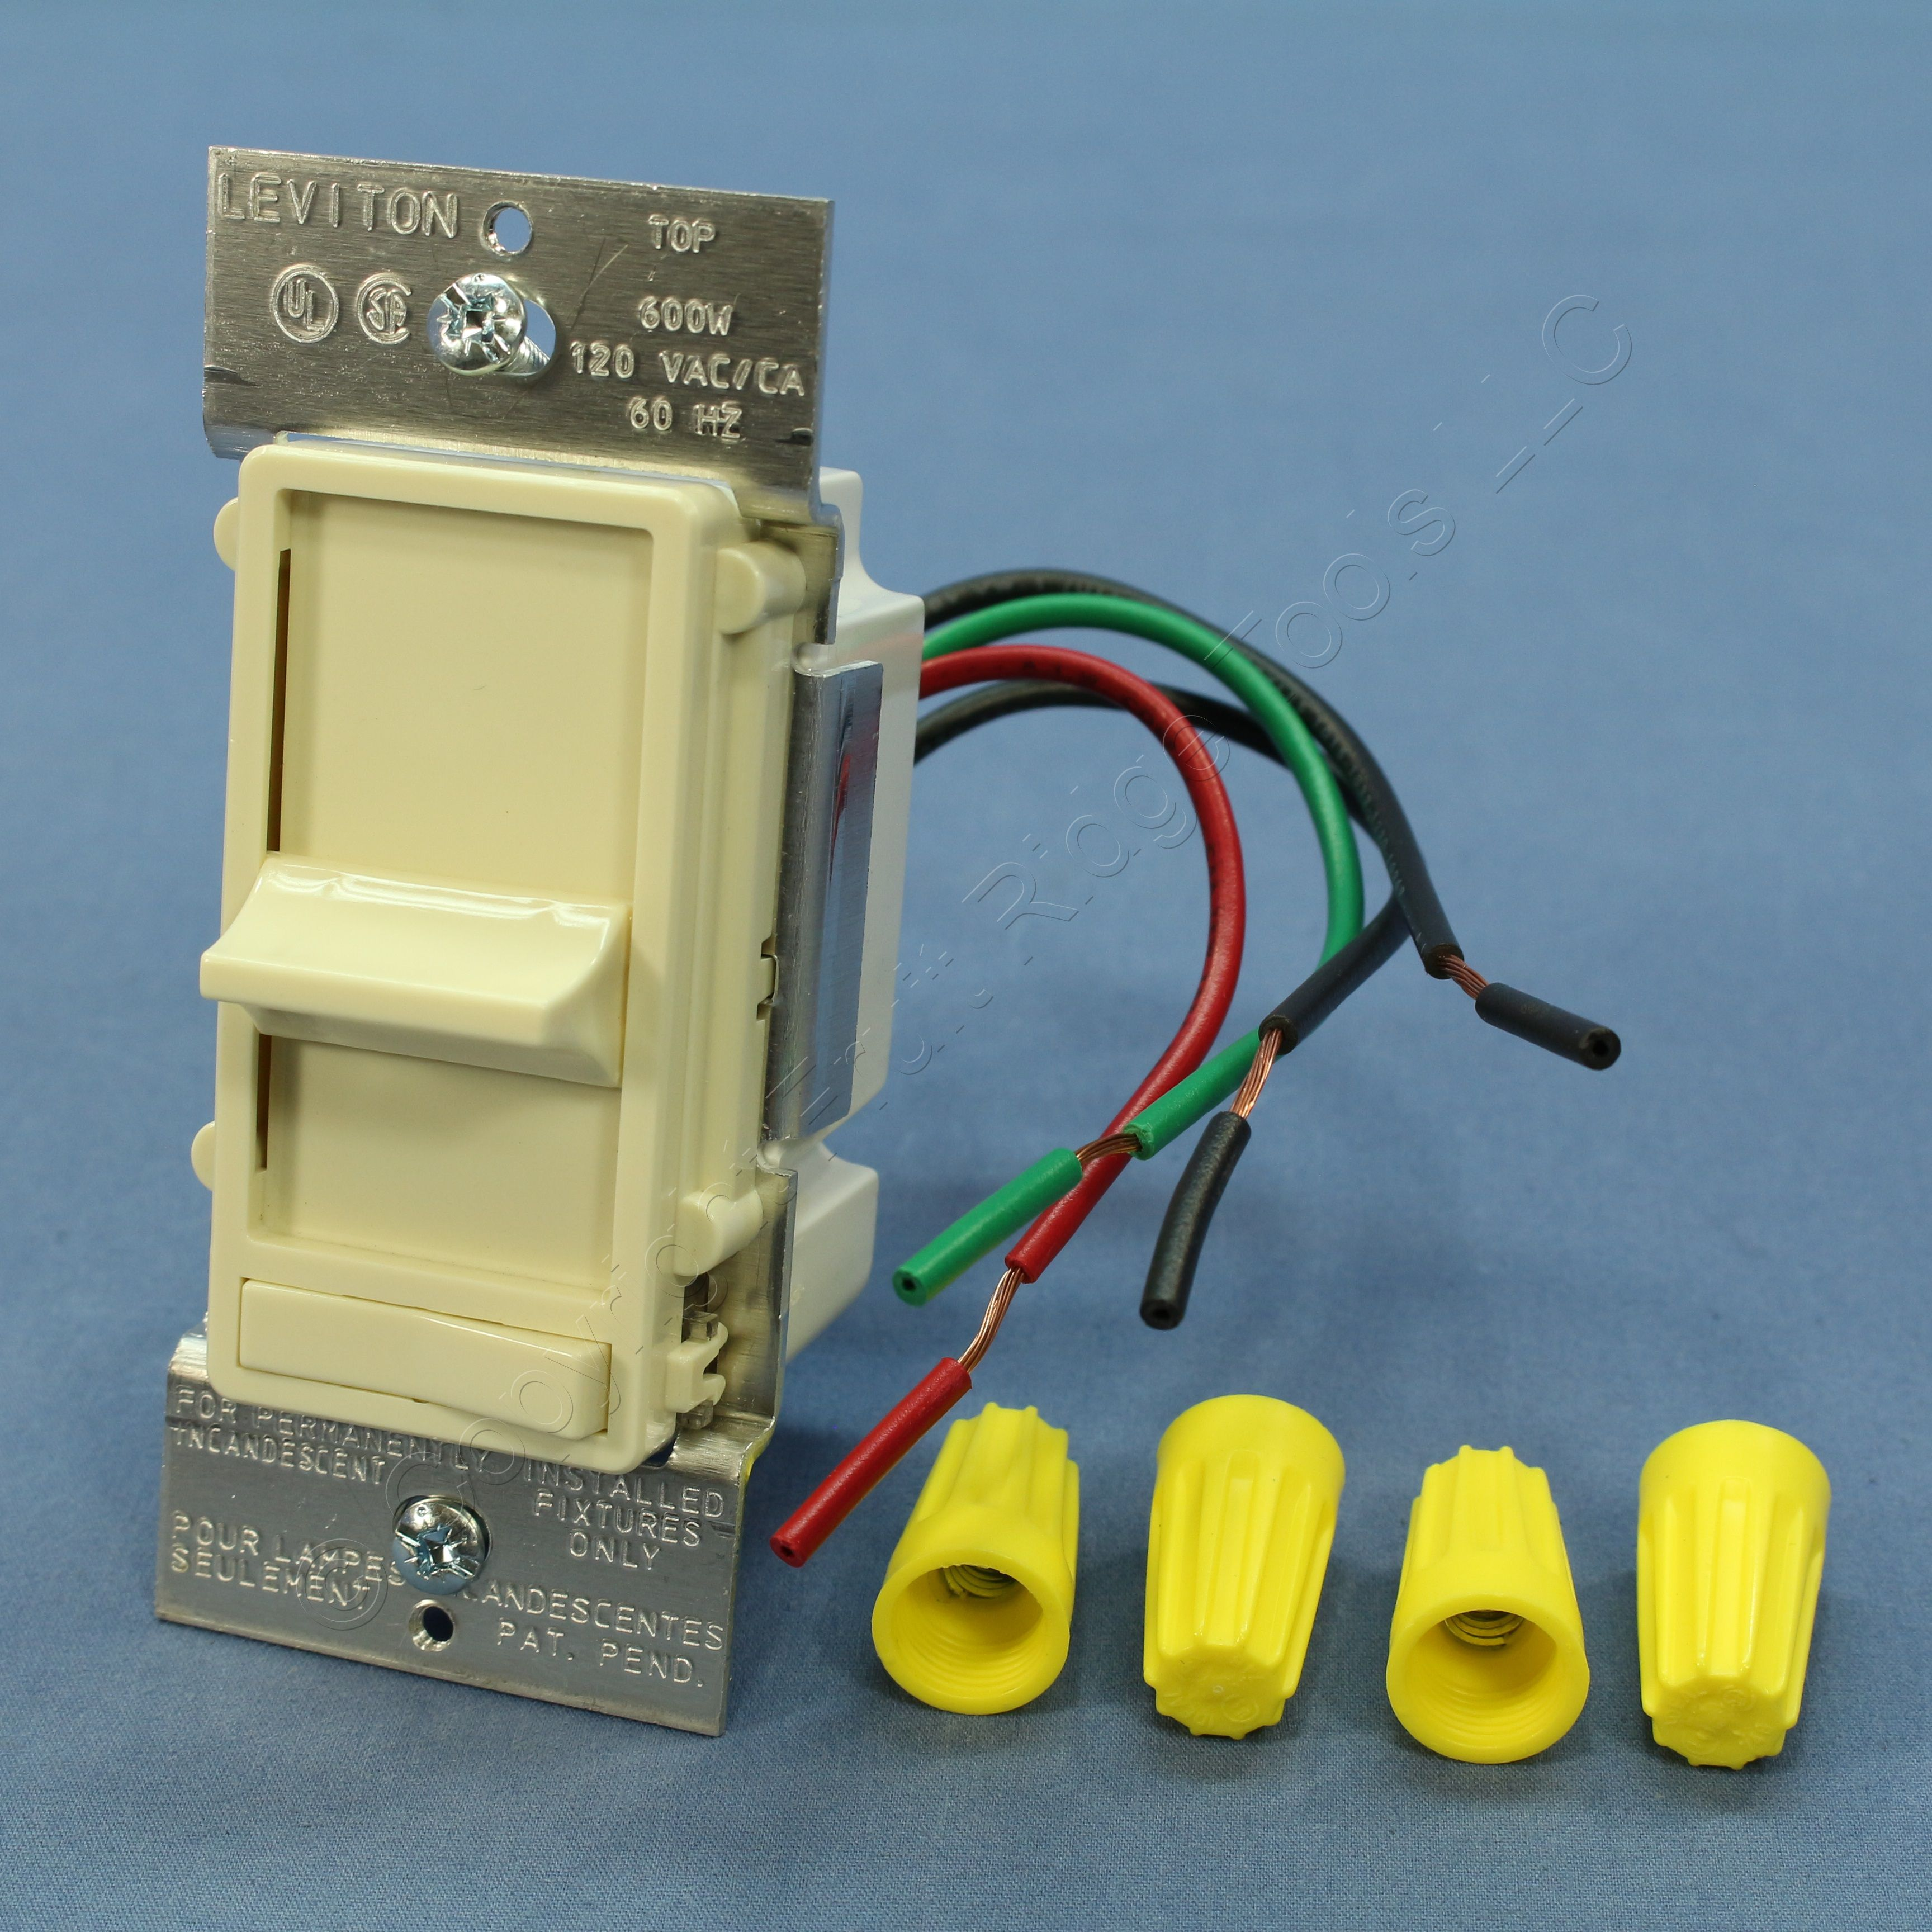 leviton 3 way slide dimmer wiring diagram annavernon leviton dimmer switch wiring solidfonts